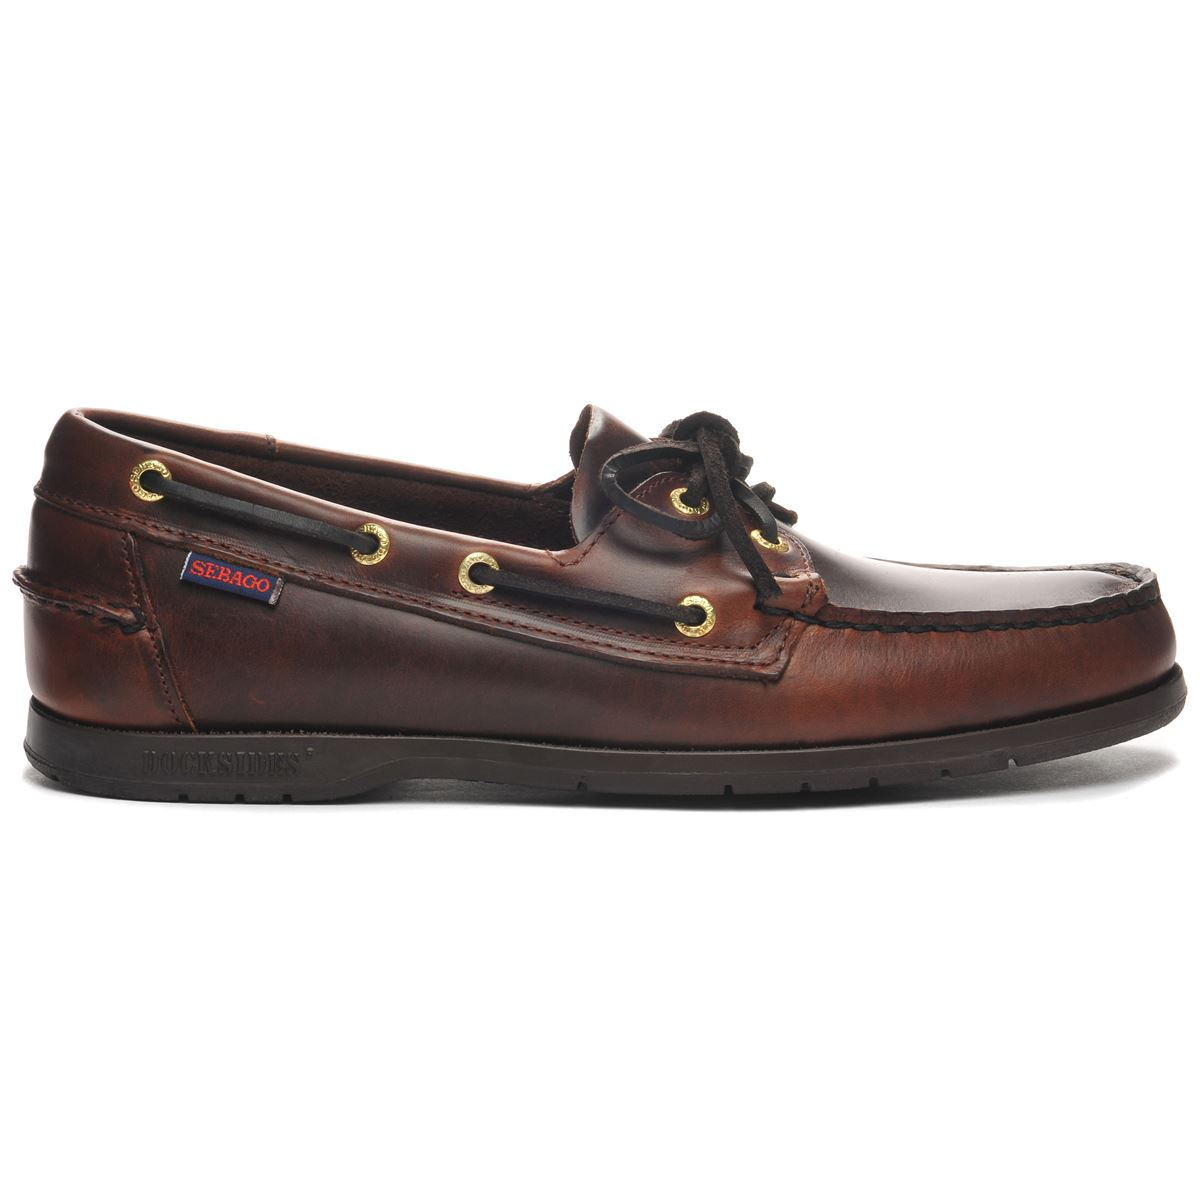 Sebago MOC ENDEAVOR Man Yachting sailing Moccasin